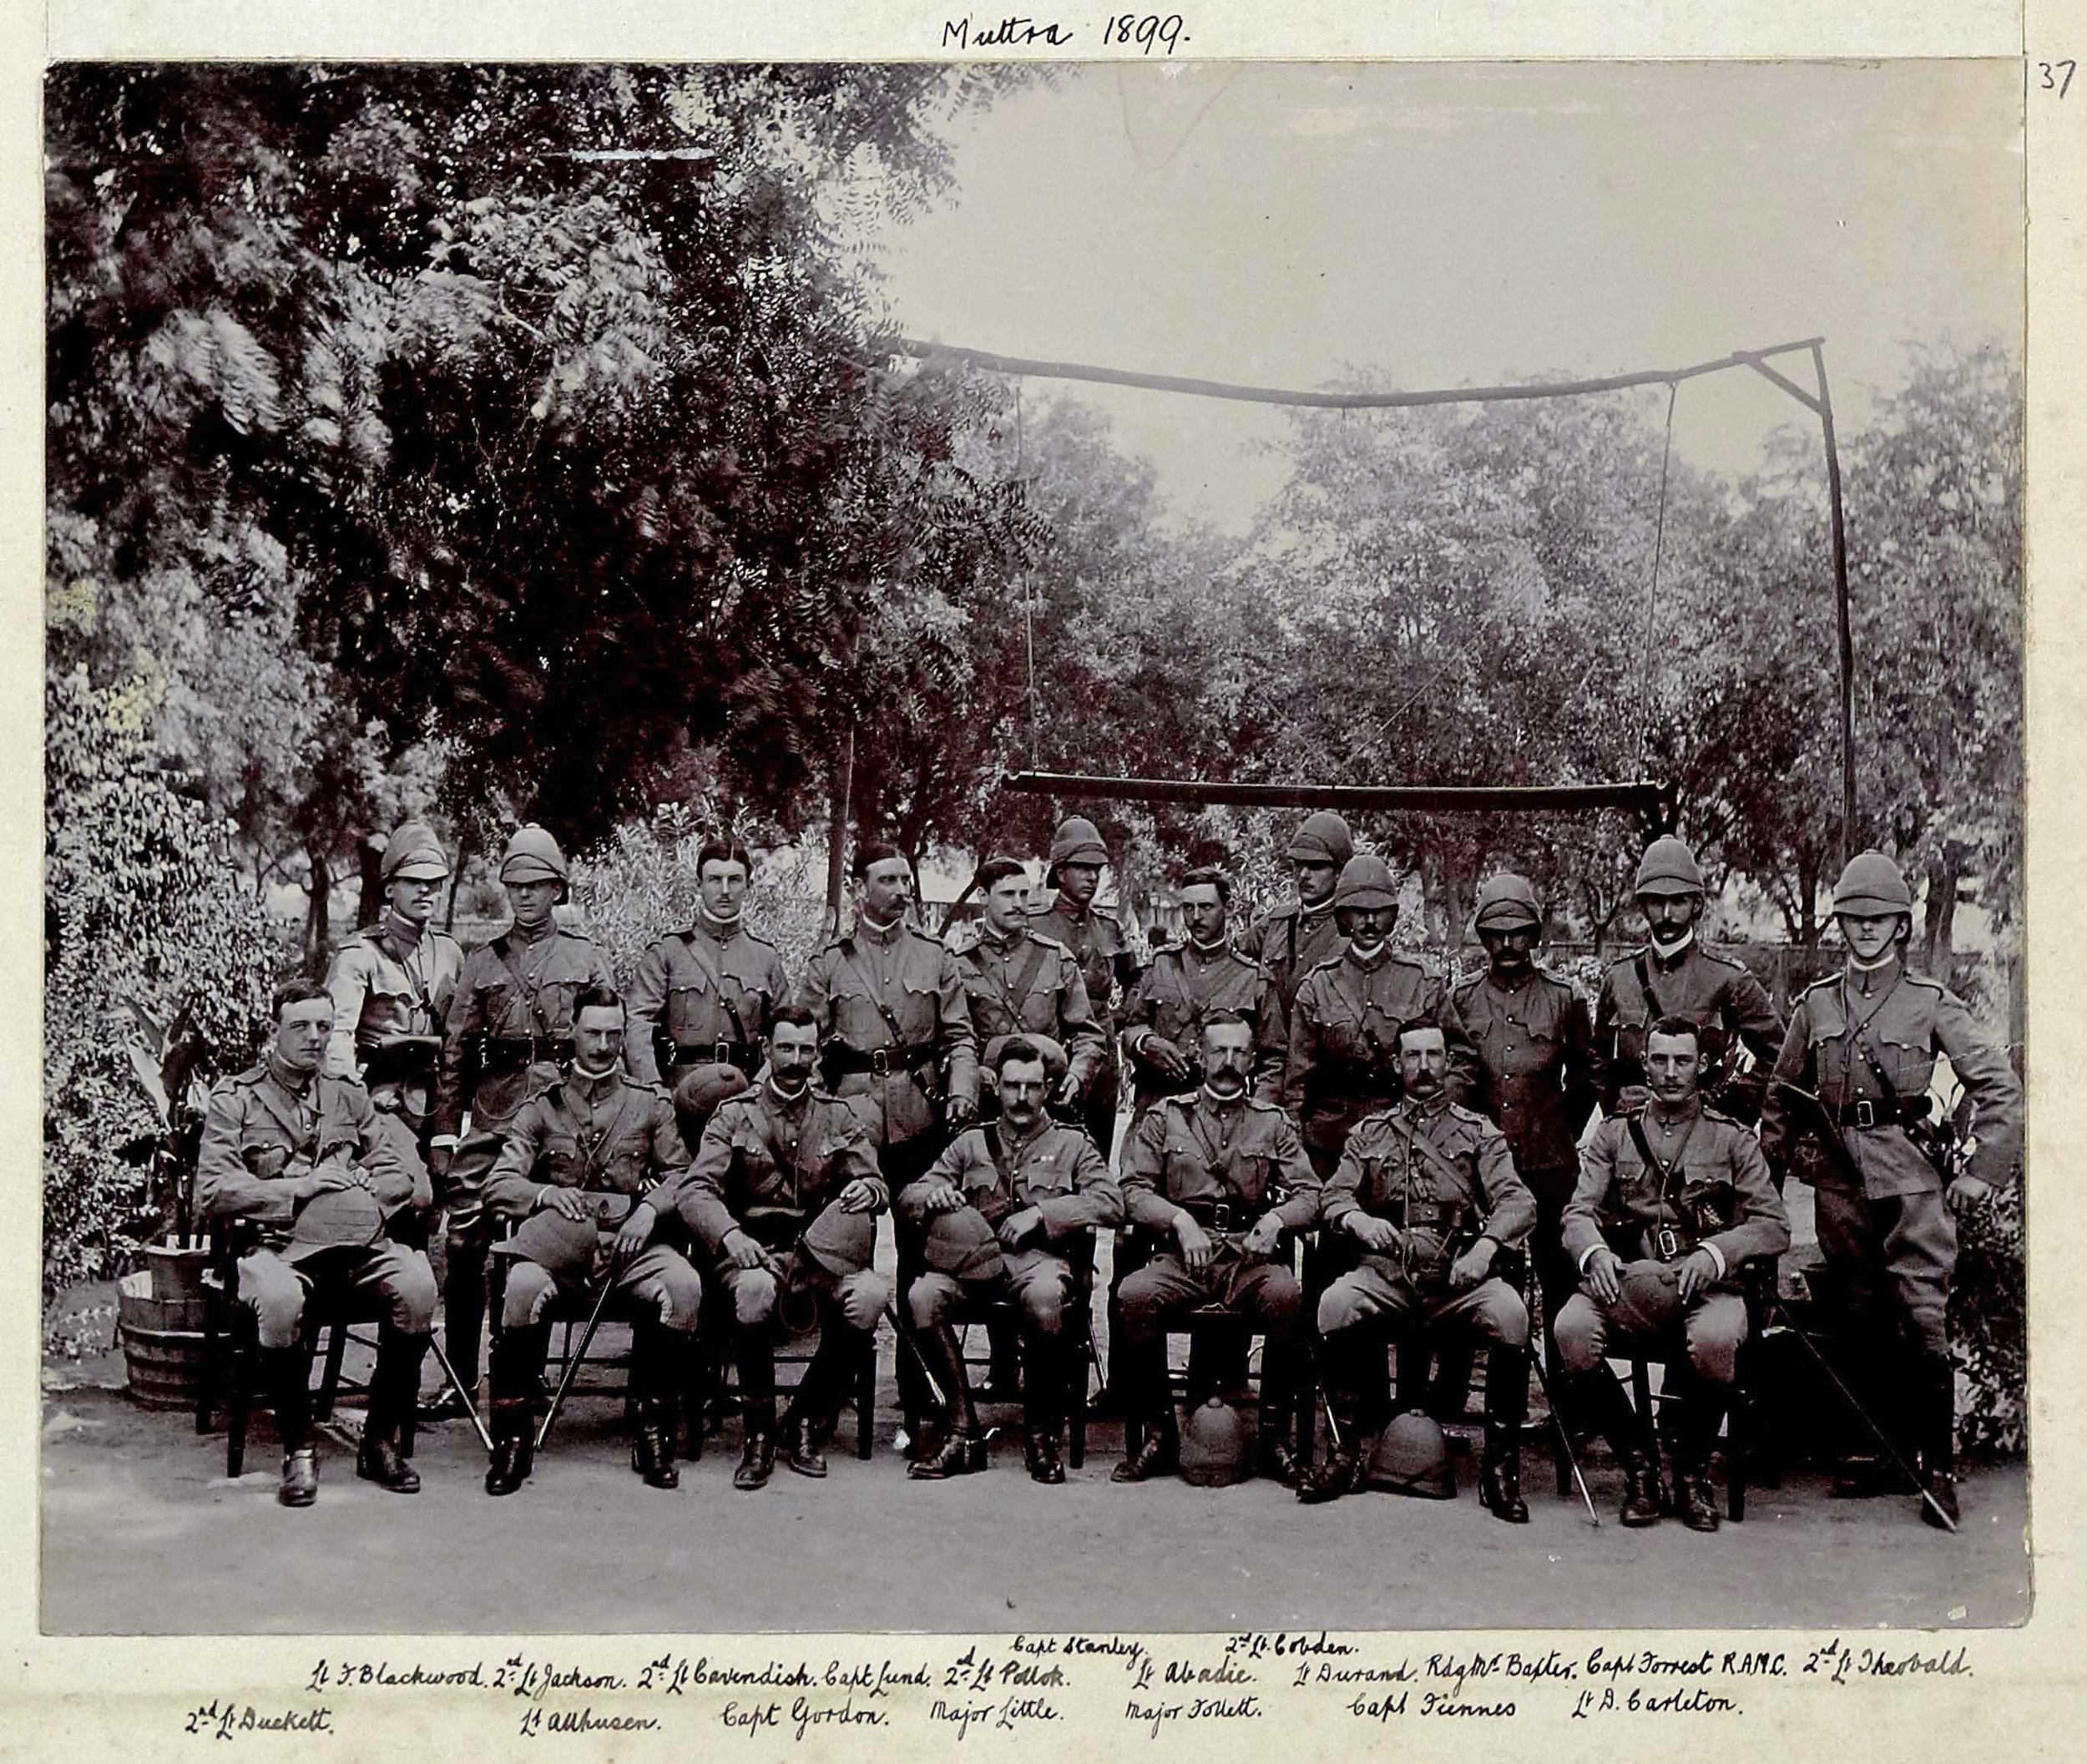 Officers of the 9th Lancers at Muttra in India in 1899 shortly before deploying to South Africa for the Boer War, including Captain Thomas Edward Gordon (front row, third left) (copyright 9th/12th Lancers Regimental Museum, Accession No 2090-16-37).